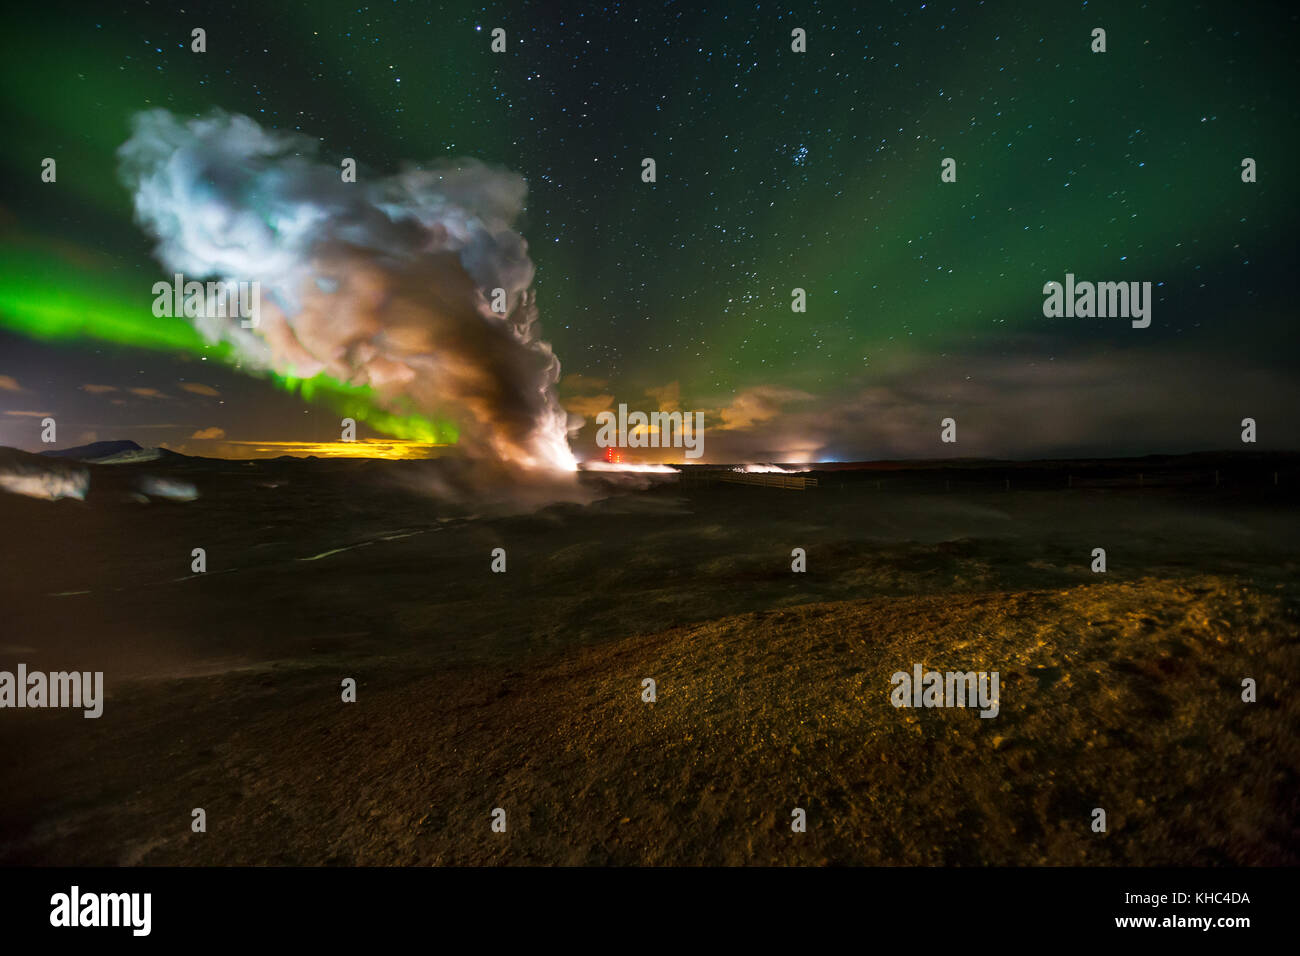 Northern lights over Gunnuhver, a geothermal geyser in Reykjanes peninsula. - Stock Image